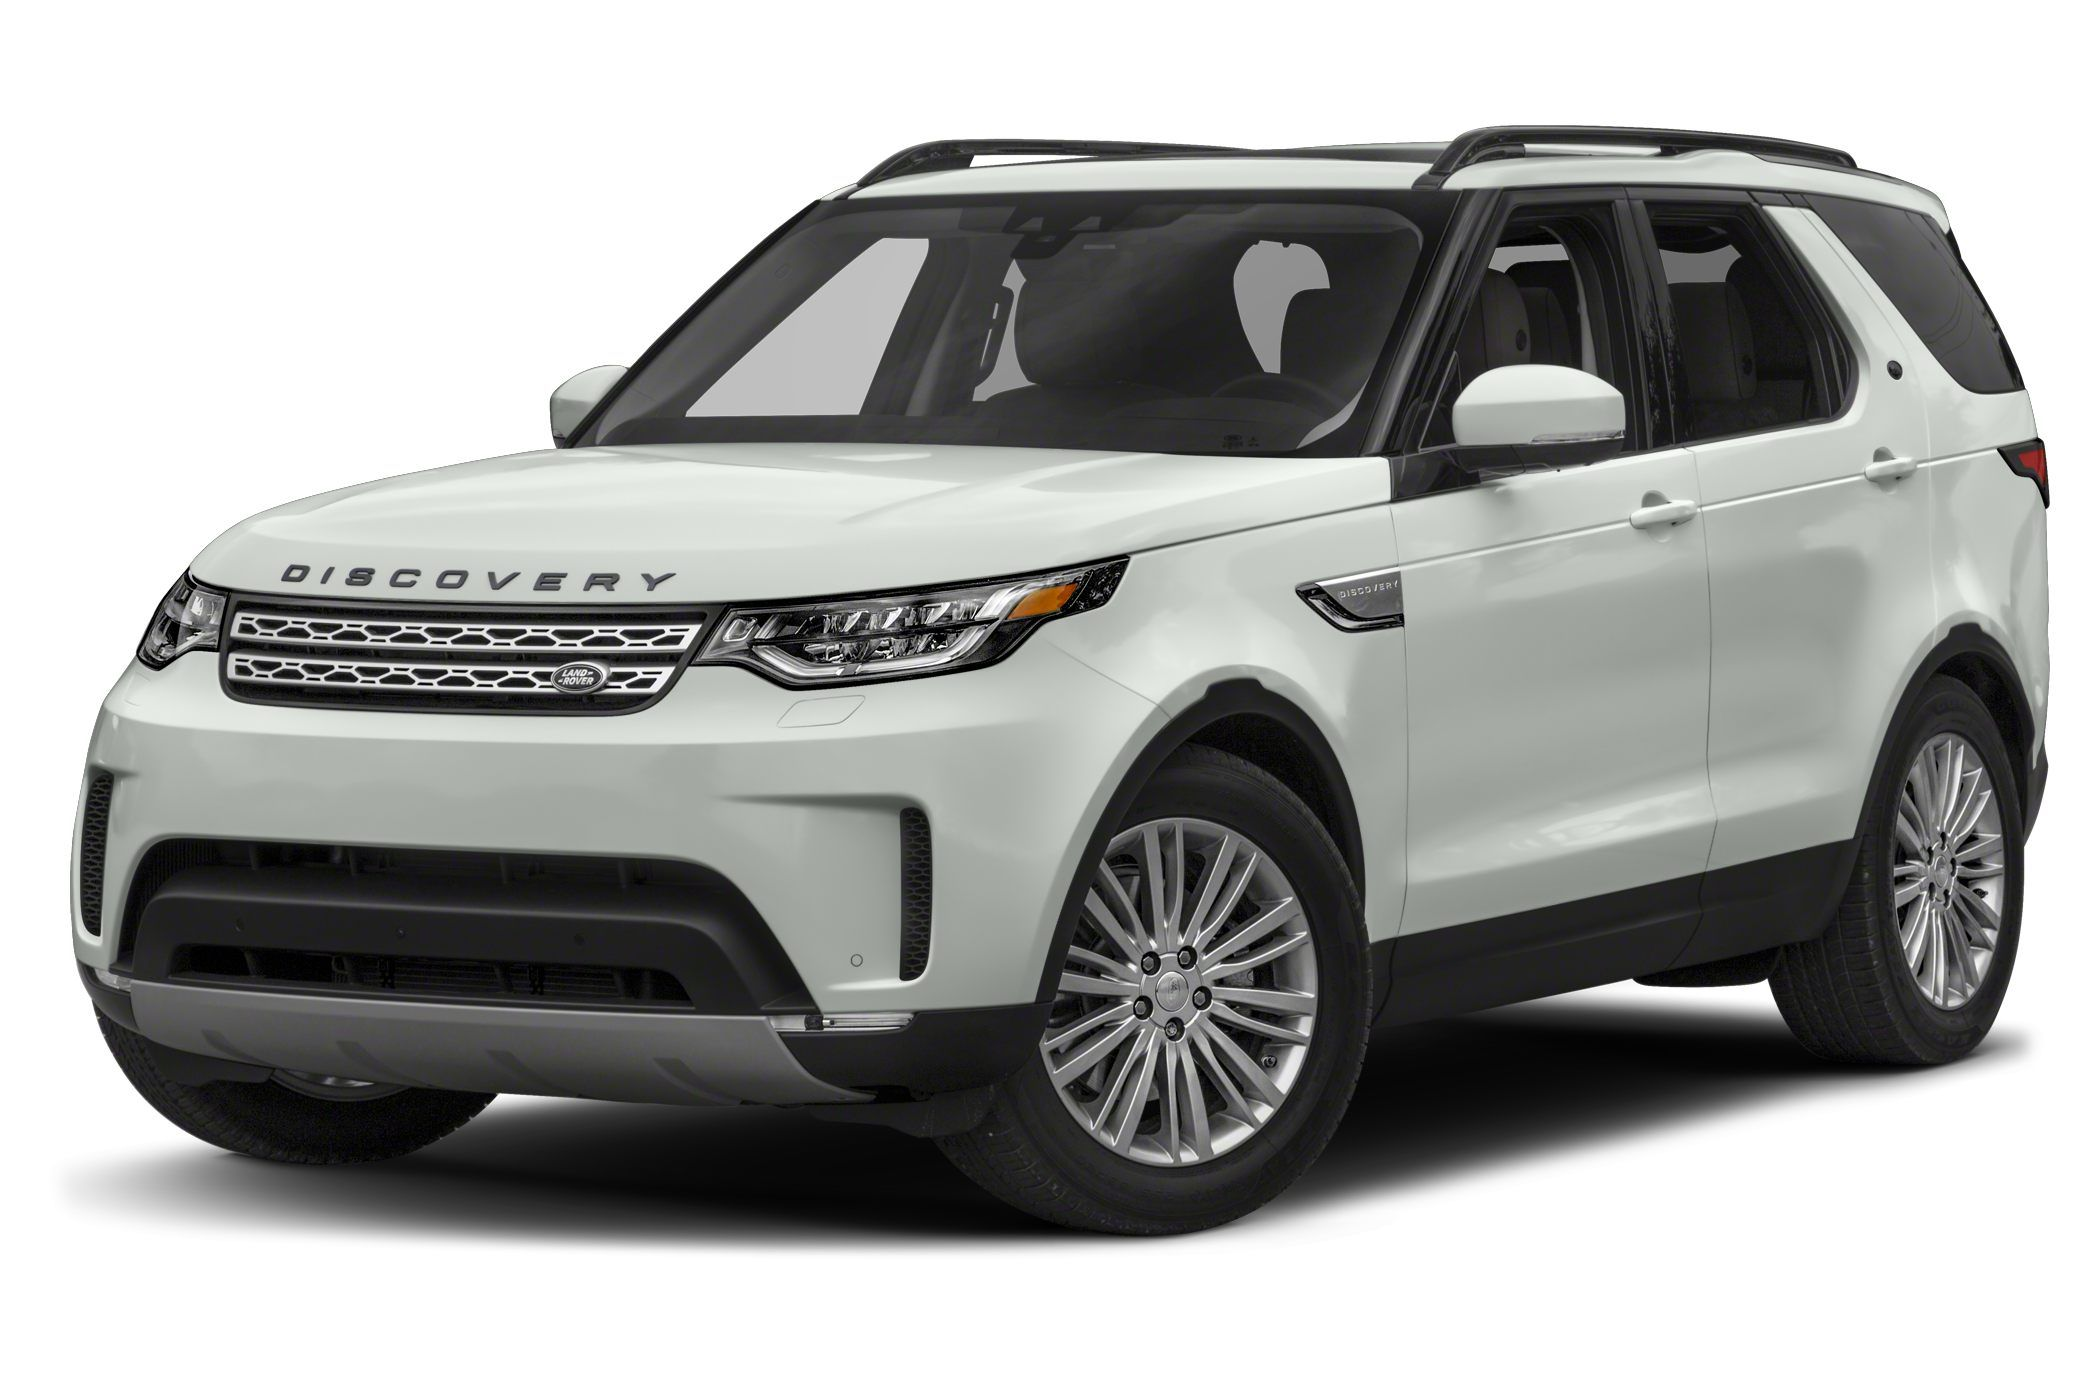 Most Fuel Efficient 3 Row Luxury Suvs Cars Cars Online Networks Land Rover Discovery Hse Land Rover Land Rover Discovery